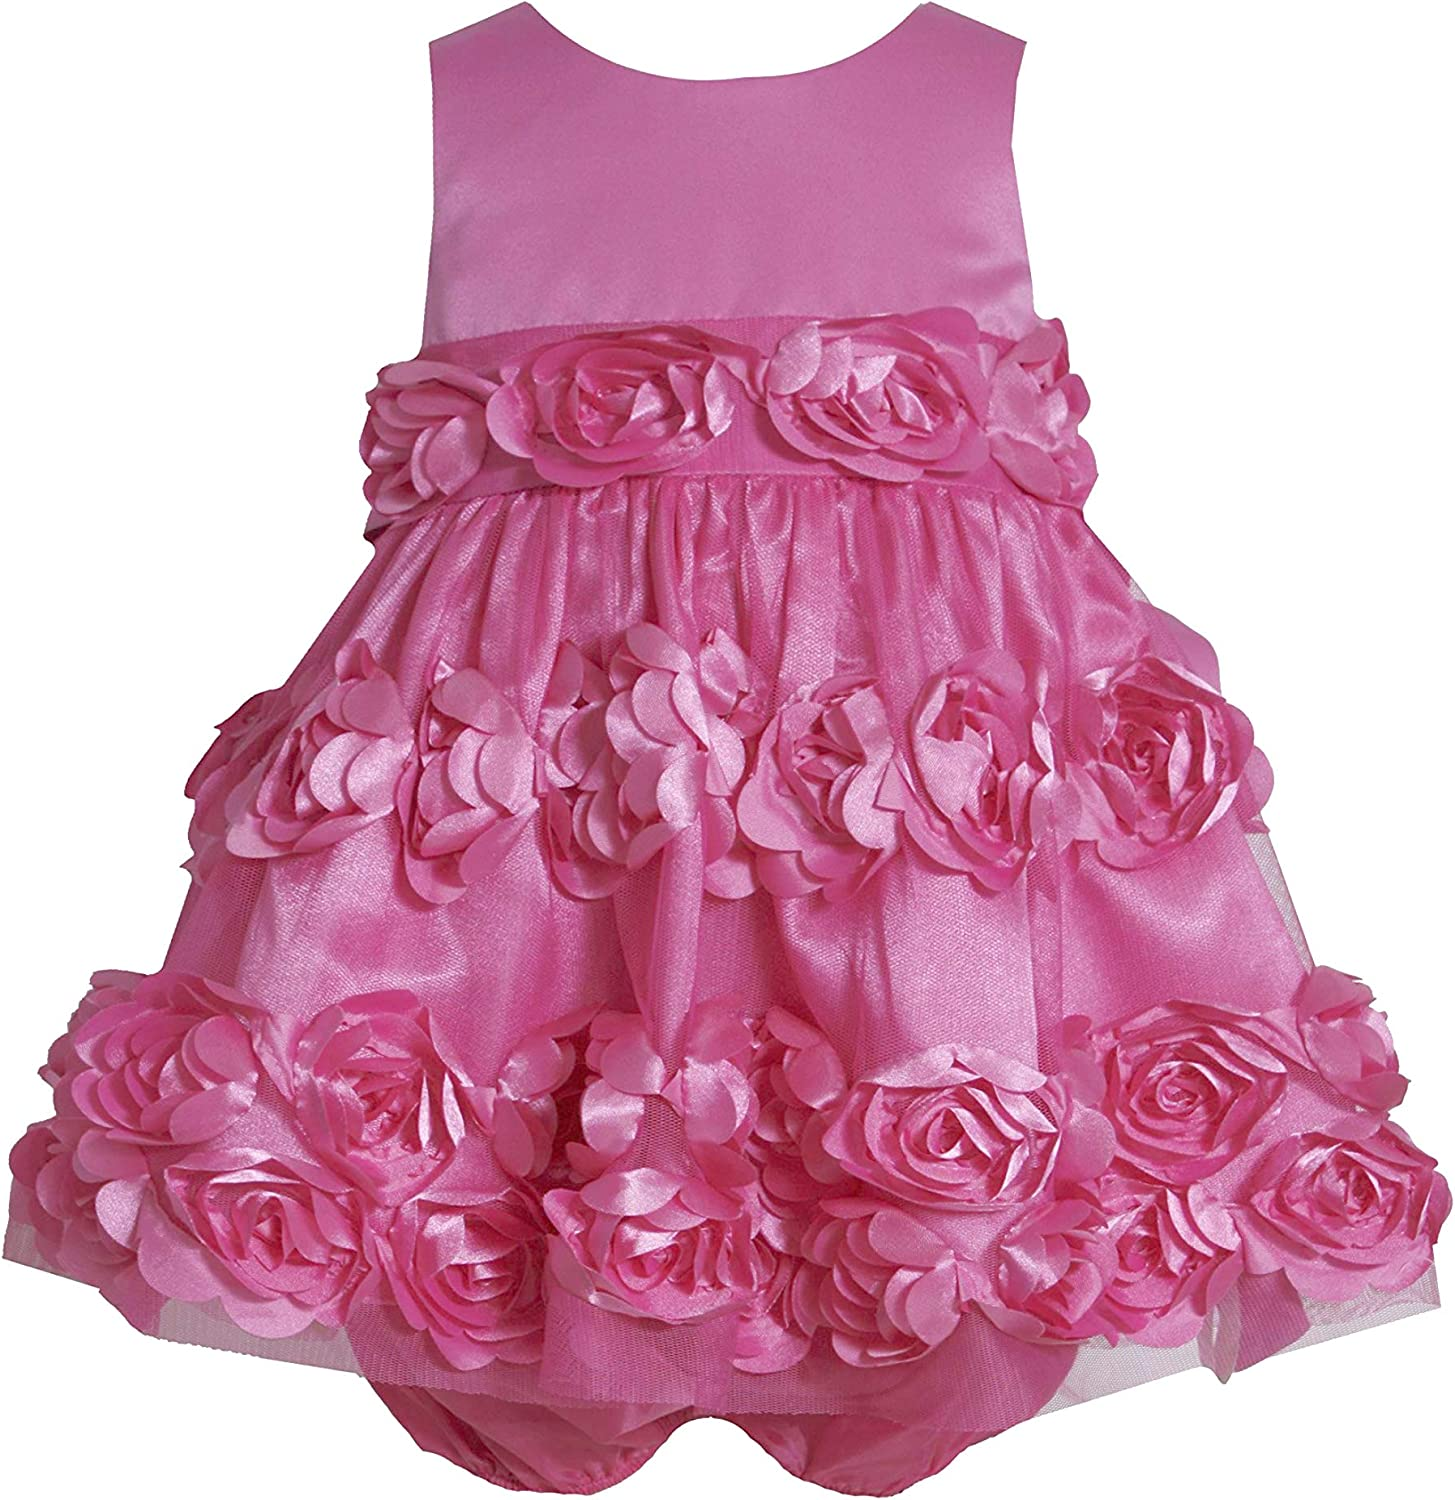 New Baby Girls Bonnie Jean Social Gown Dress Bloomers SZ 12 18 24 Months